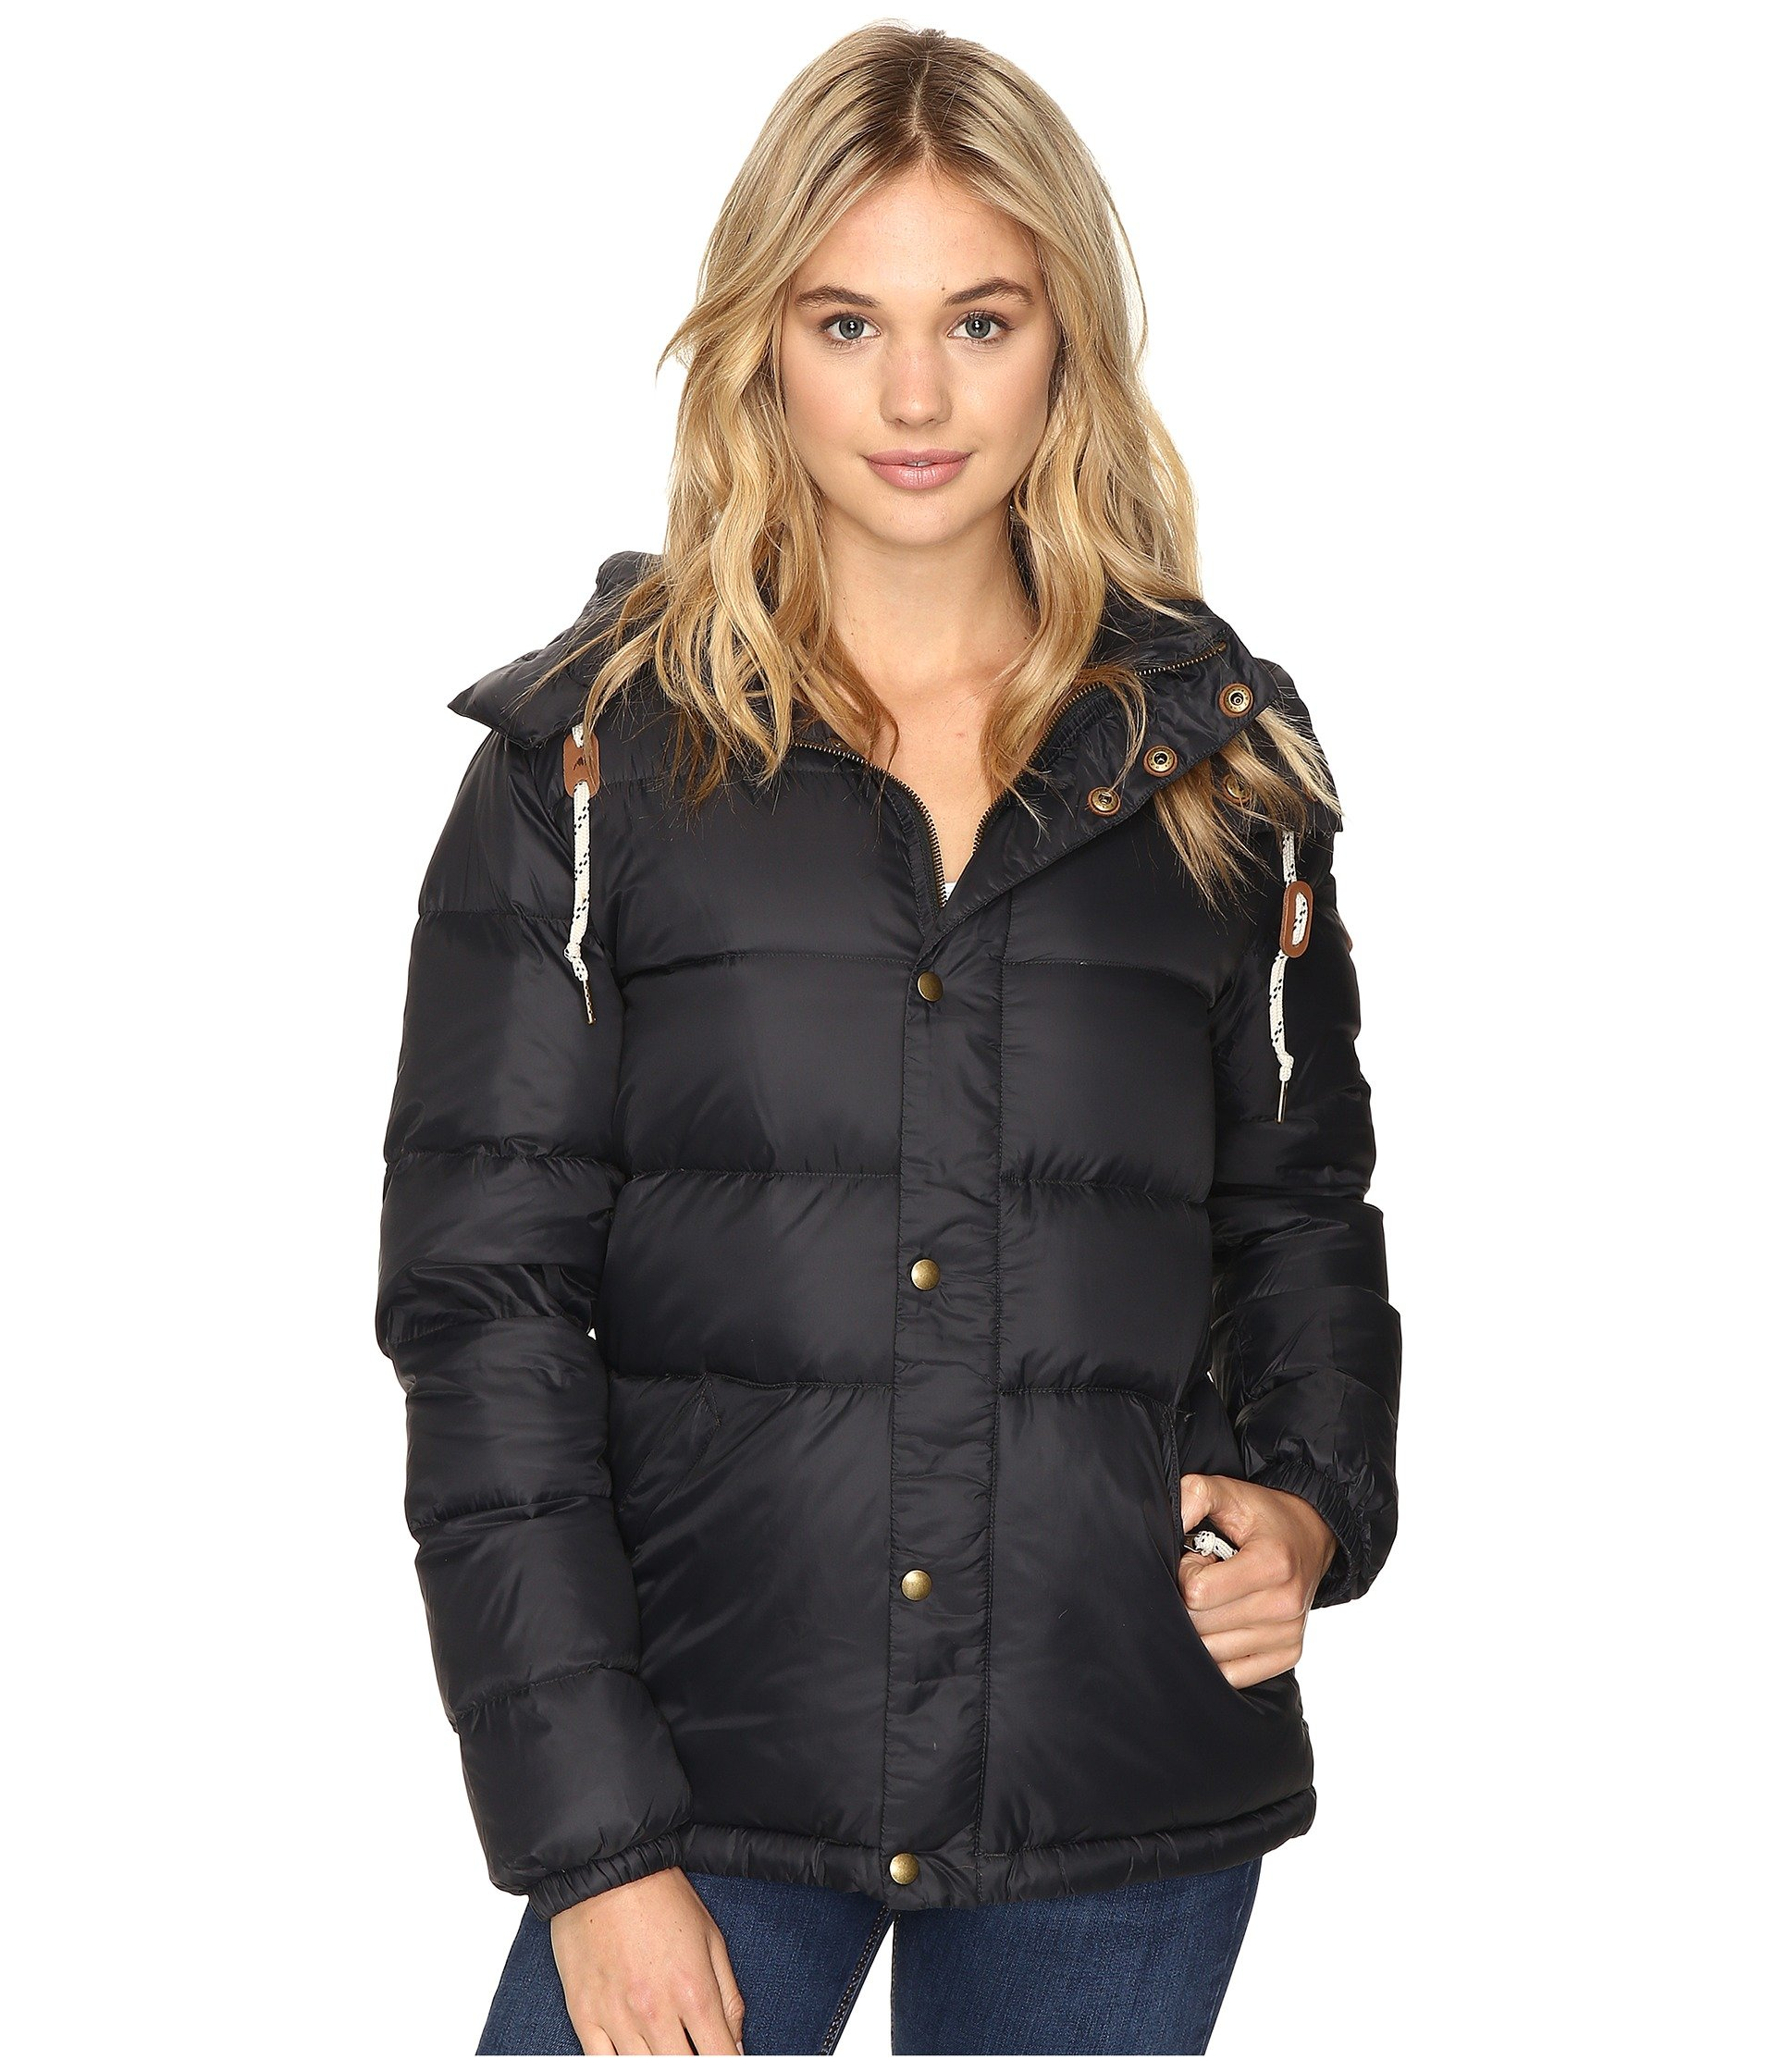 HERITAGE PUFFY JACKET